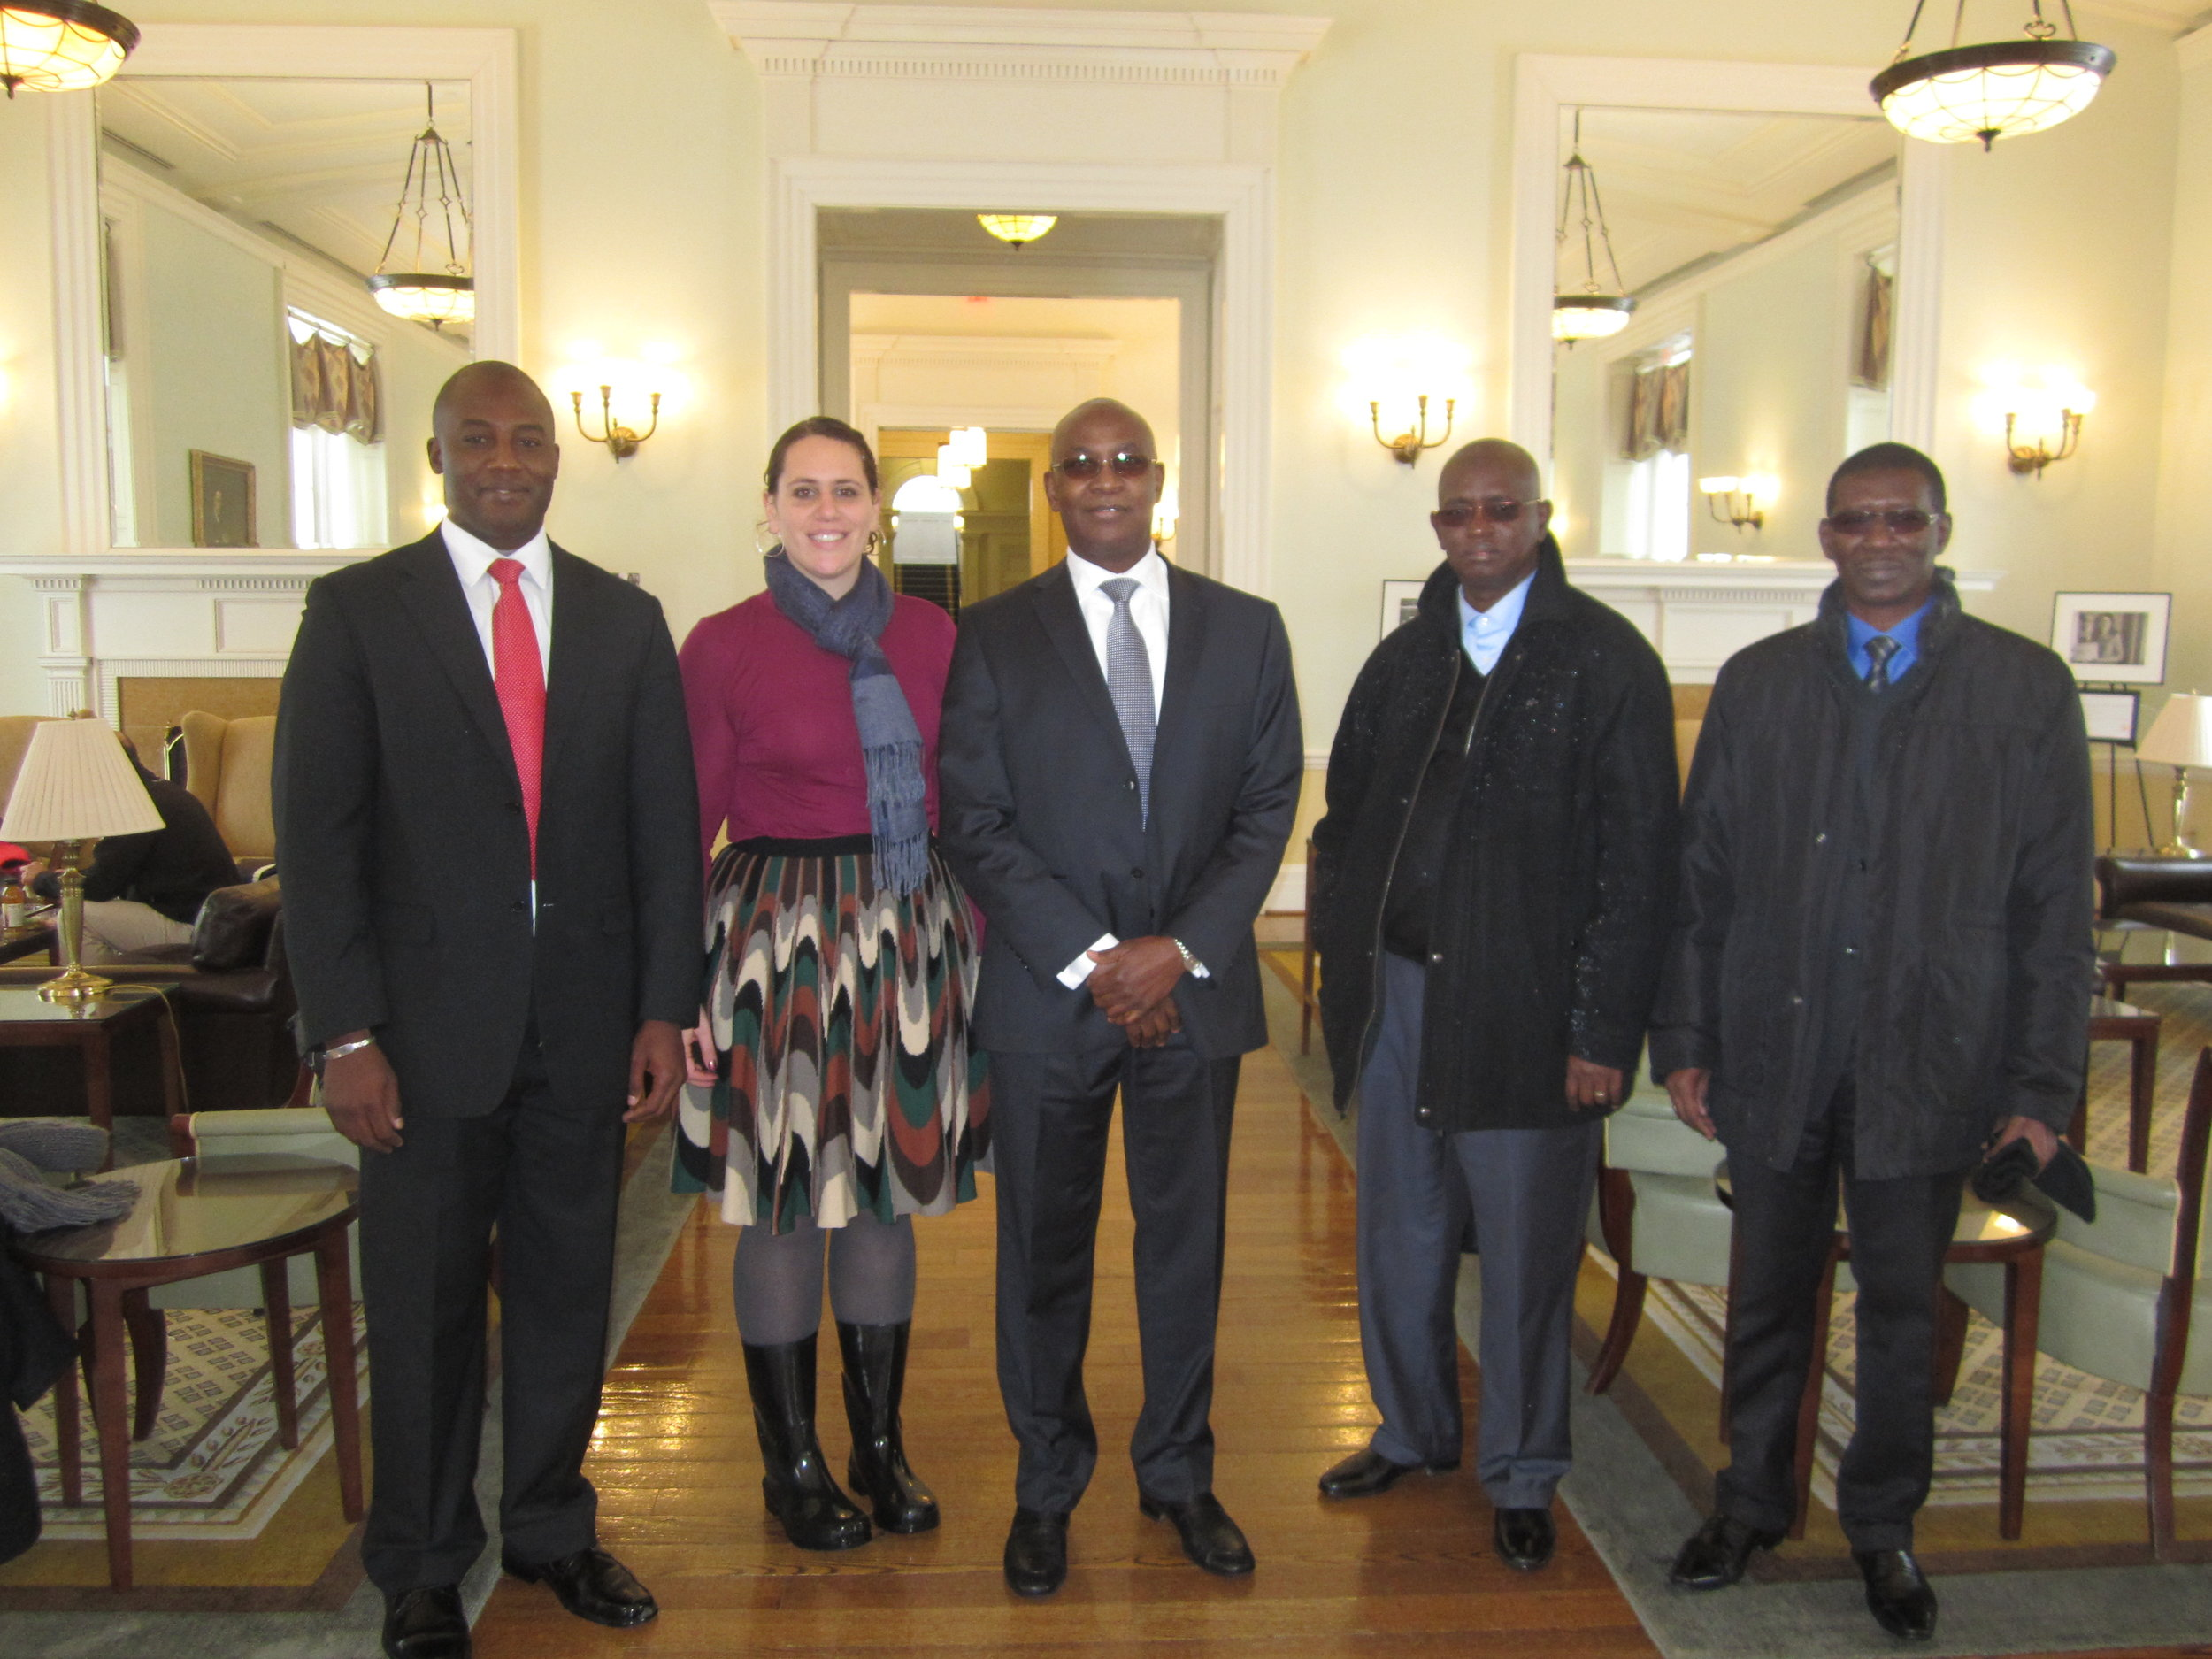 Momar Dieng (SpecialAdvisor to the Minister of Education), Liz Grossman, Serigne Mbaye Thiam (Minister of Education) Abdou Latif Coulibaly (Minister of Good Governance) and Mary Teuw Niane (Minister of Higher Education) at the Harvard Business School after our trek across campus in the snow.